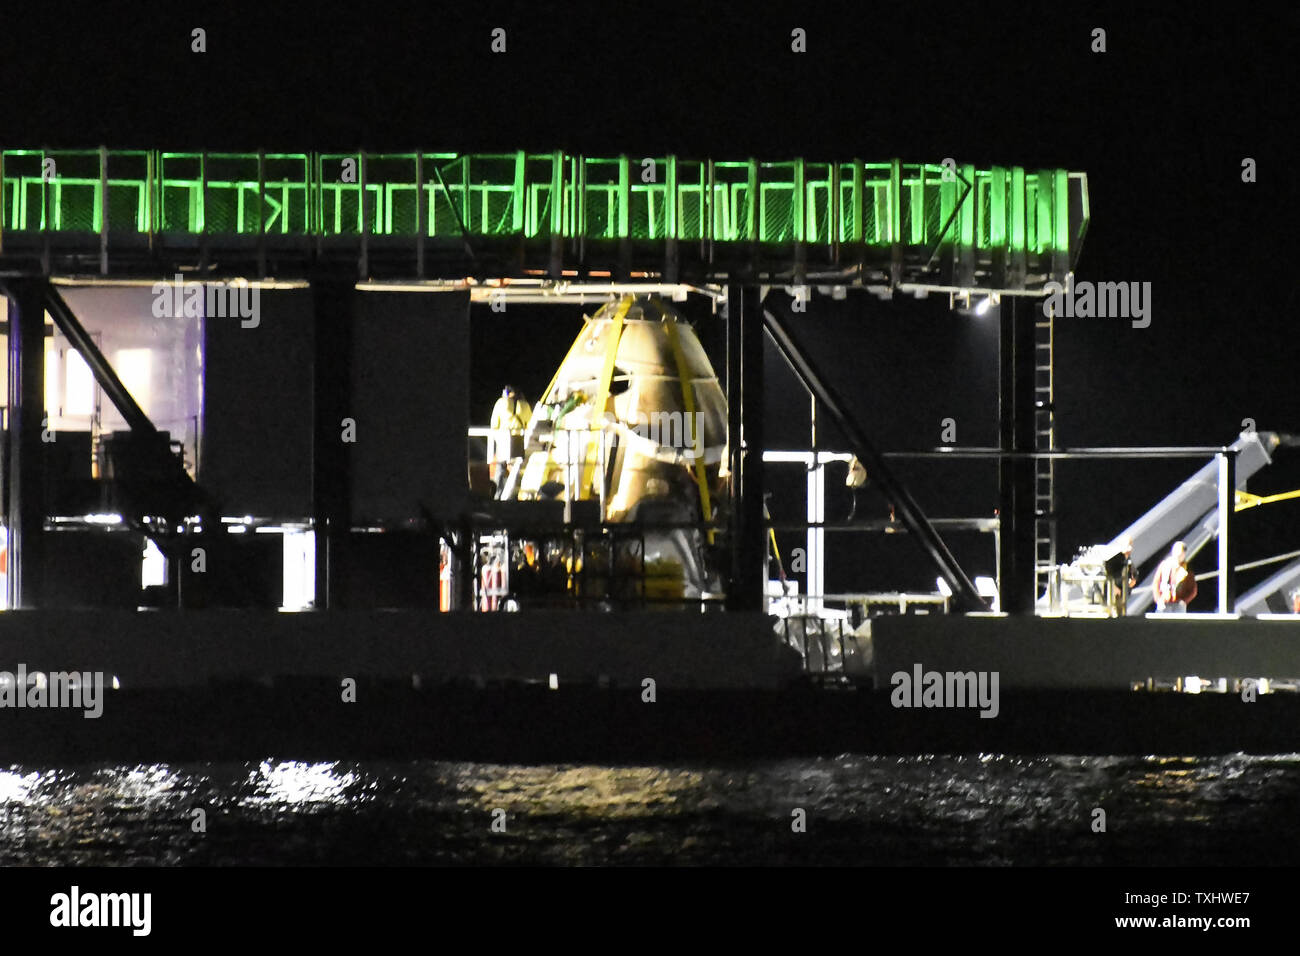 The SpaceX Crew Dragon spacecraft sits on the deck of the Company's